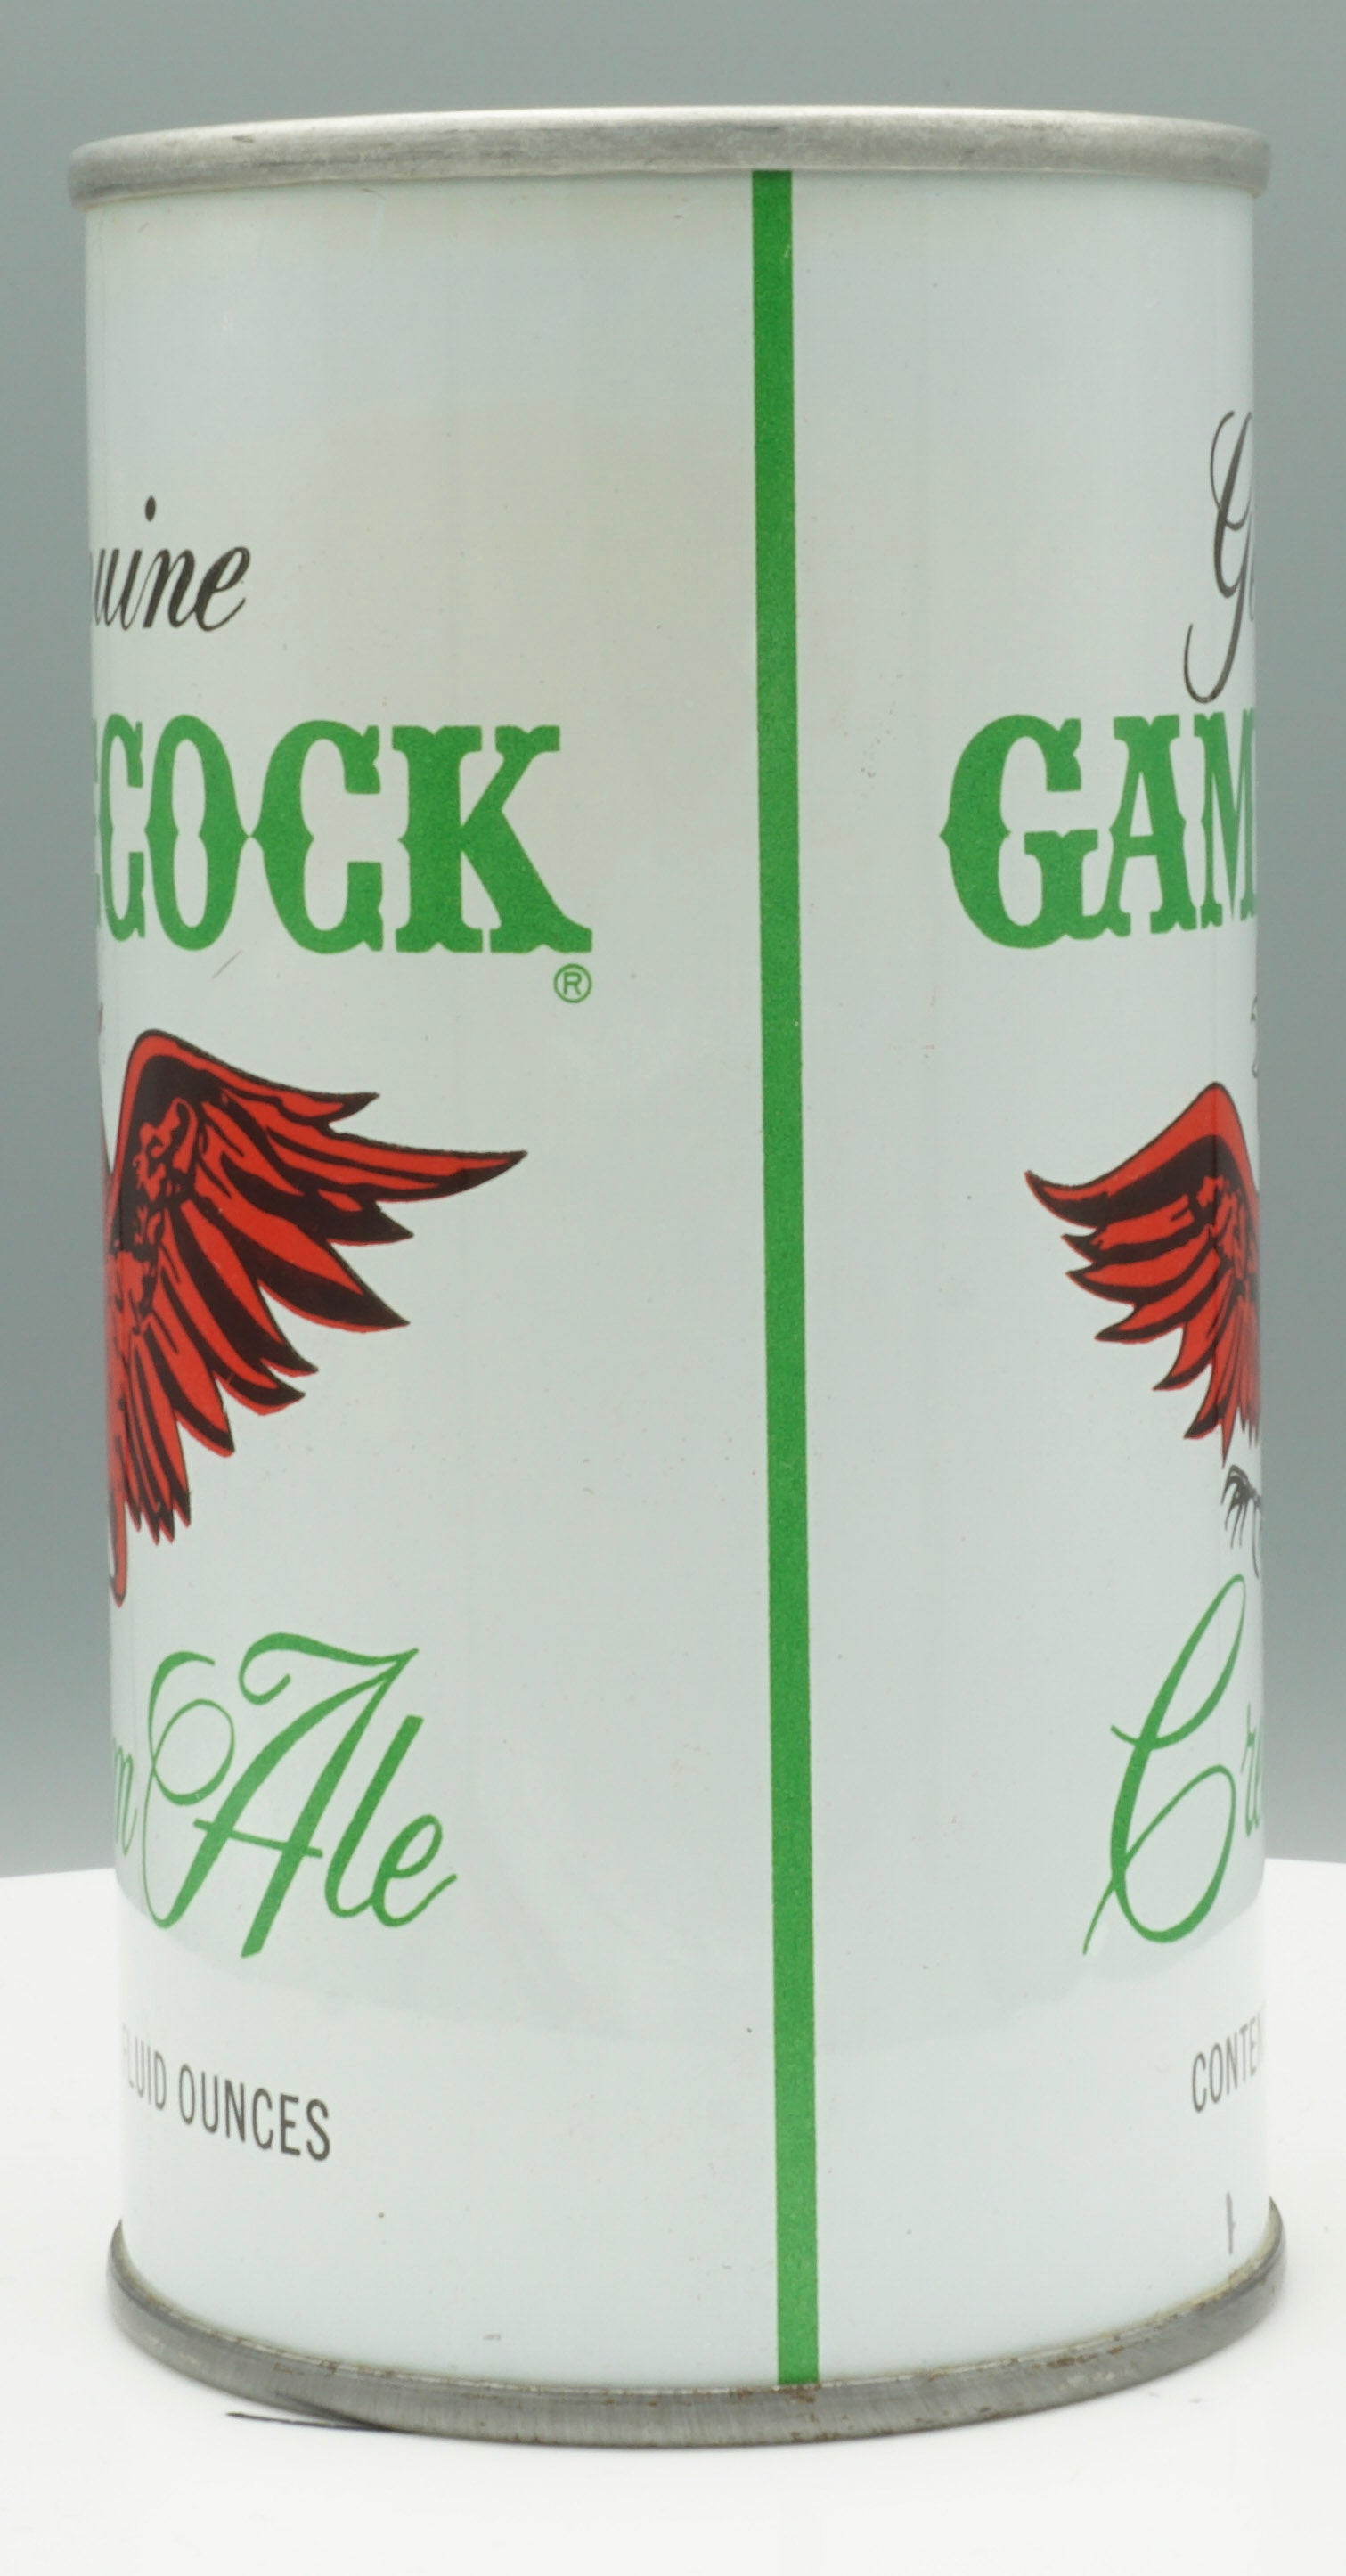 Genuine Gamecock Cream Ale, USBC II 67-08 Grade 1